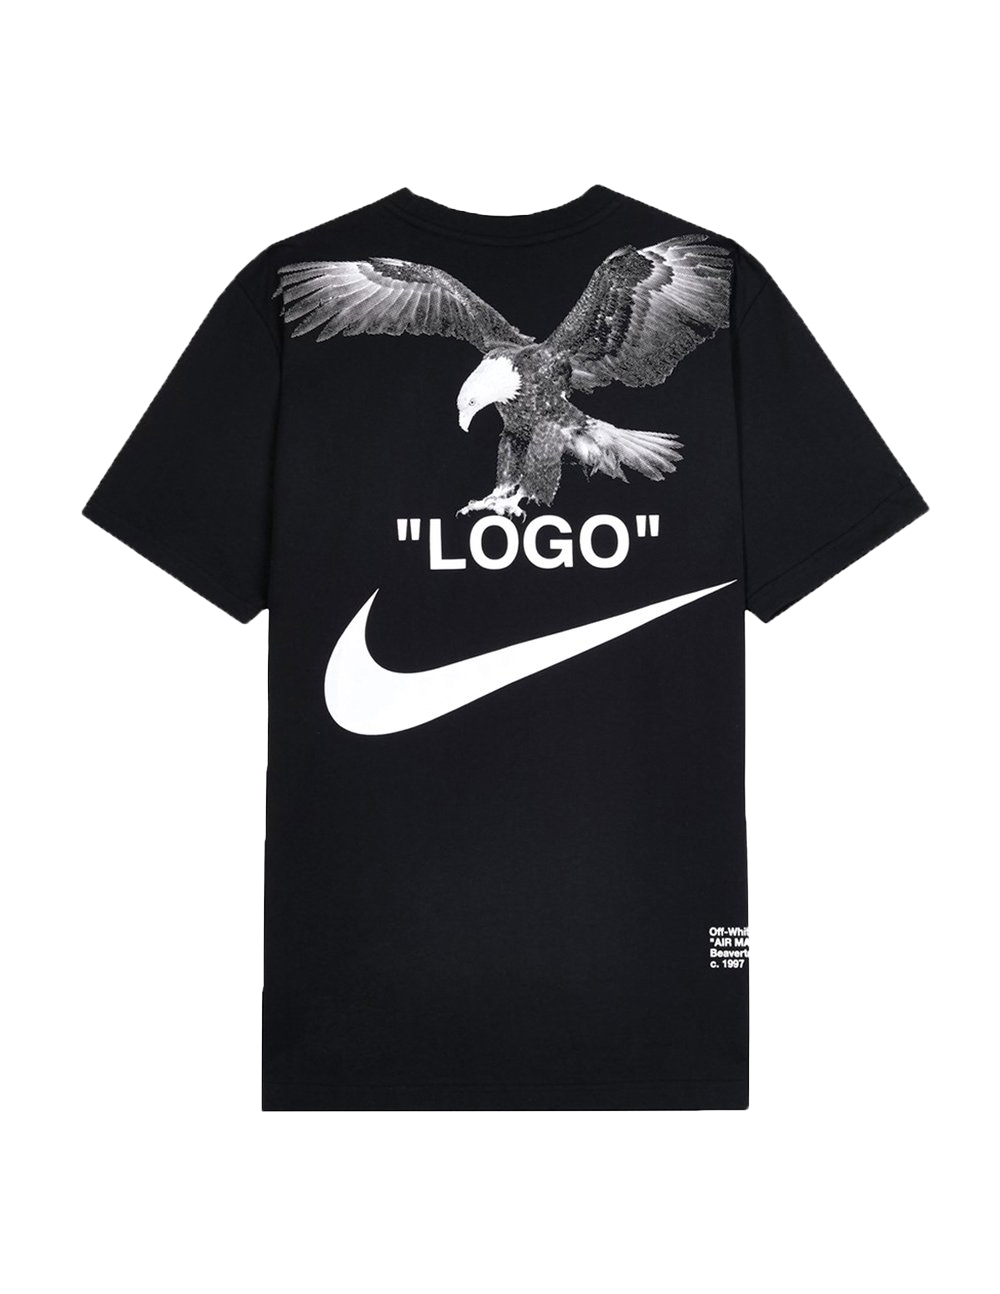 OFF-WHITE x Nike NRG A6 Tee Black